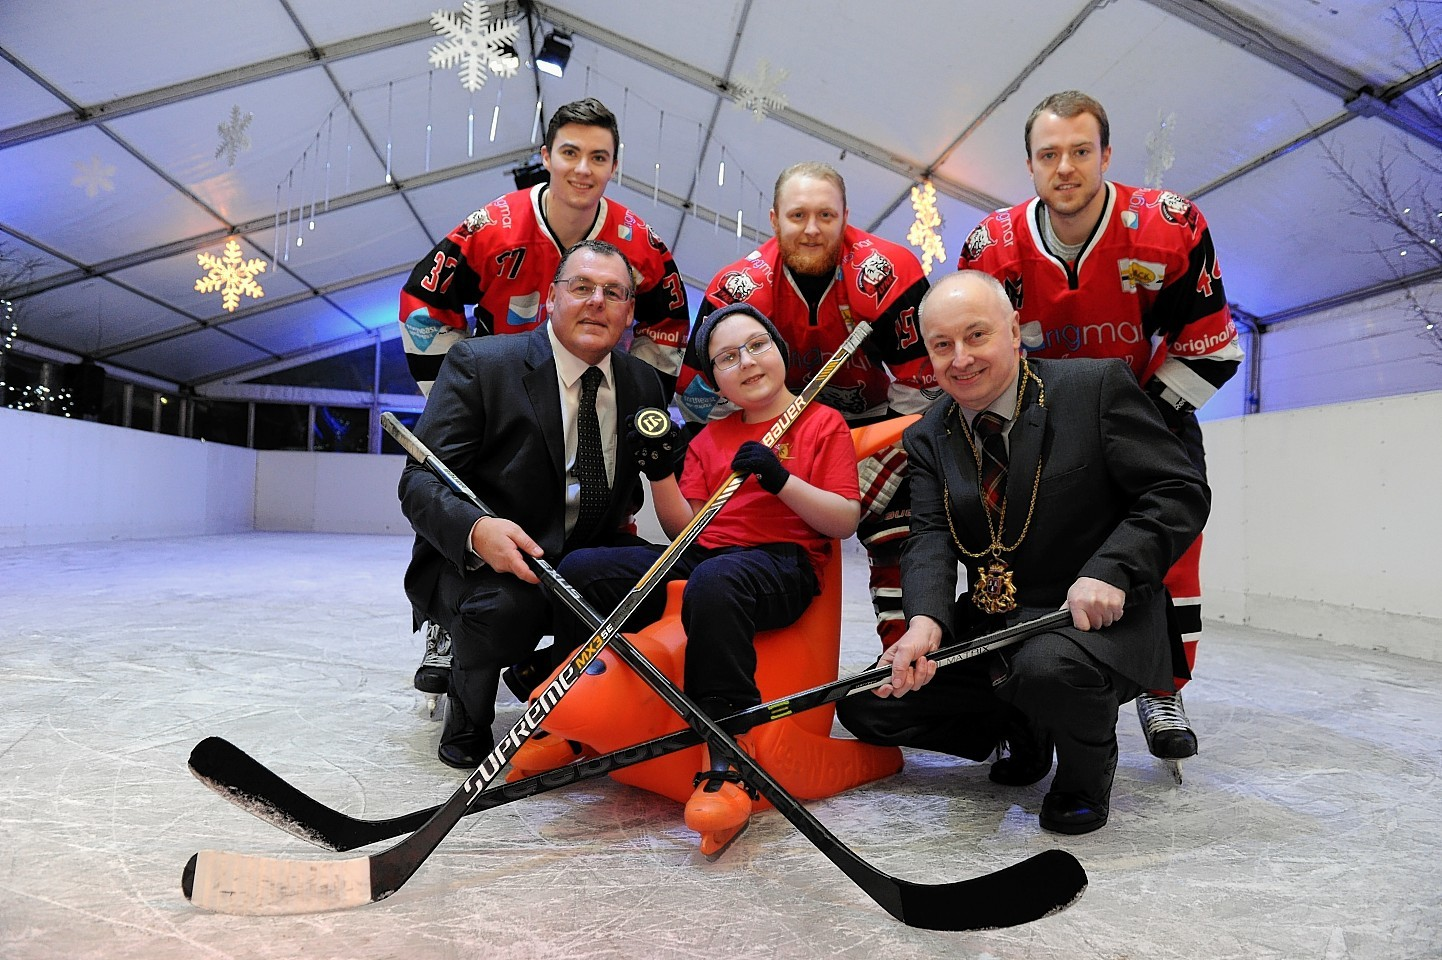 Aberdeen's outdoor ice rink opens at Union Terrace Gardens